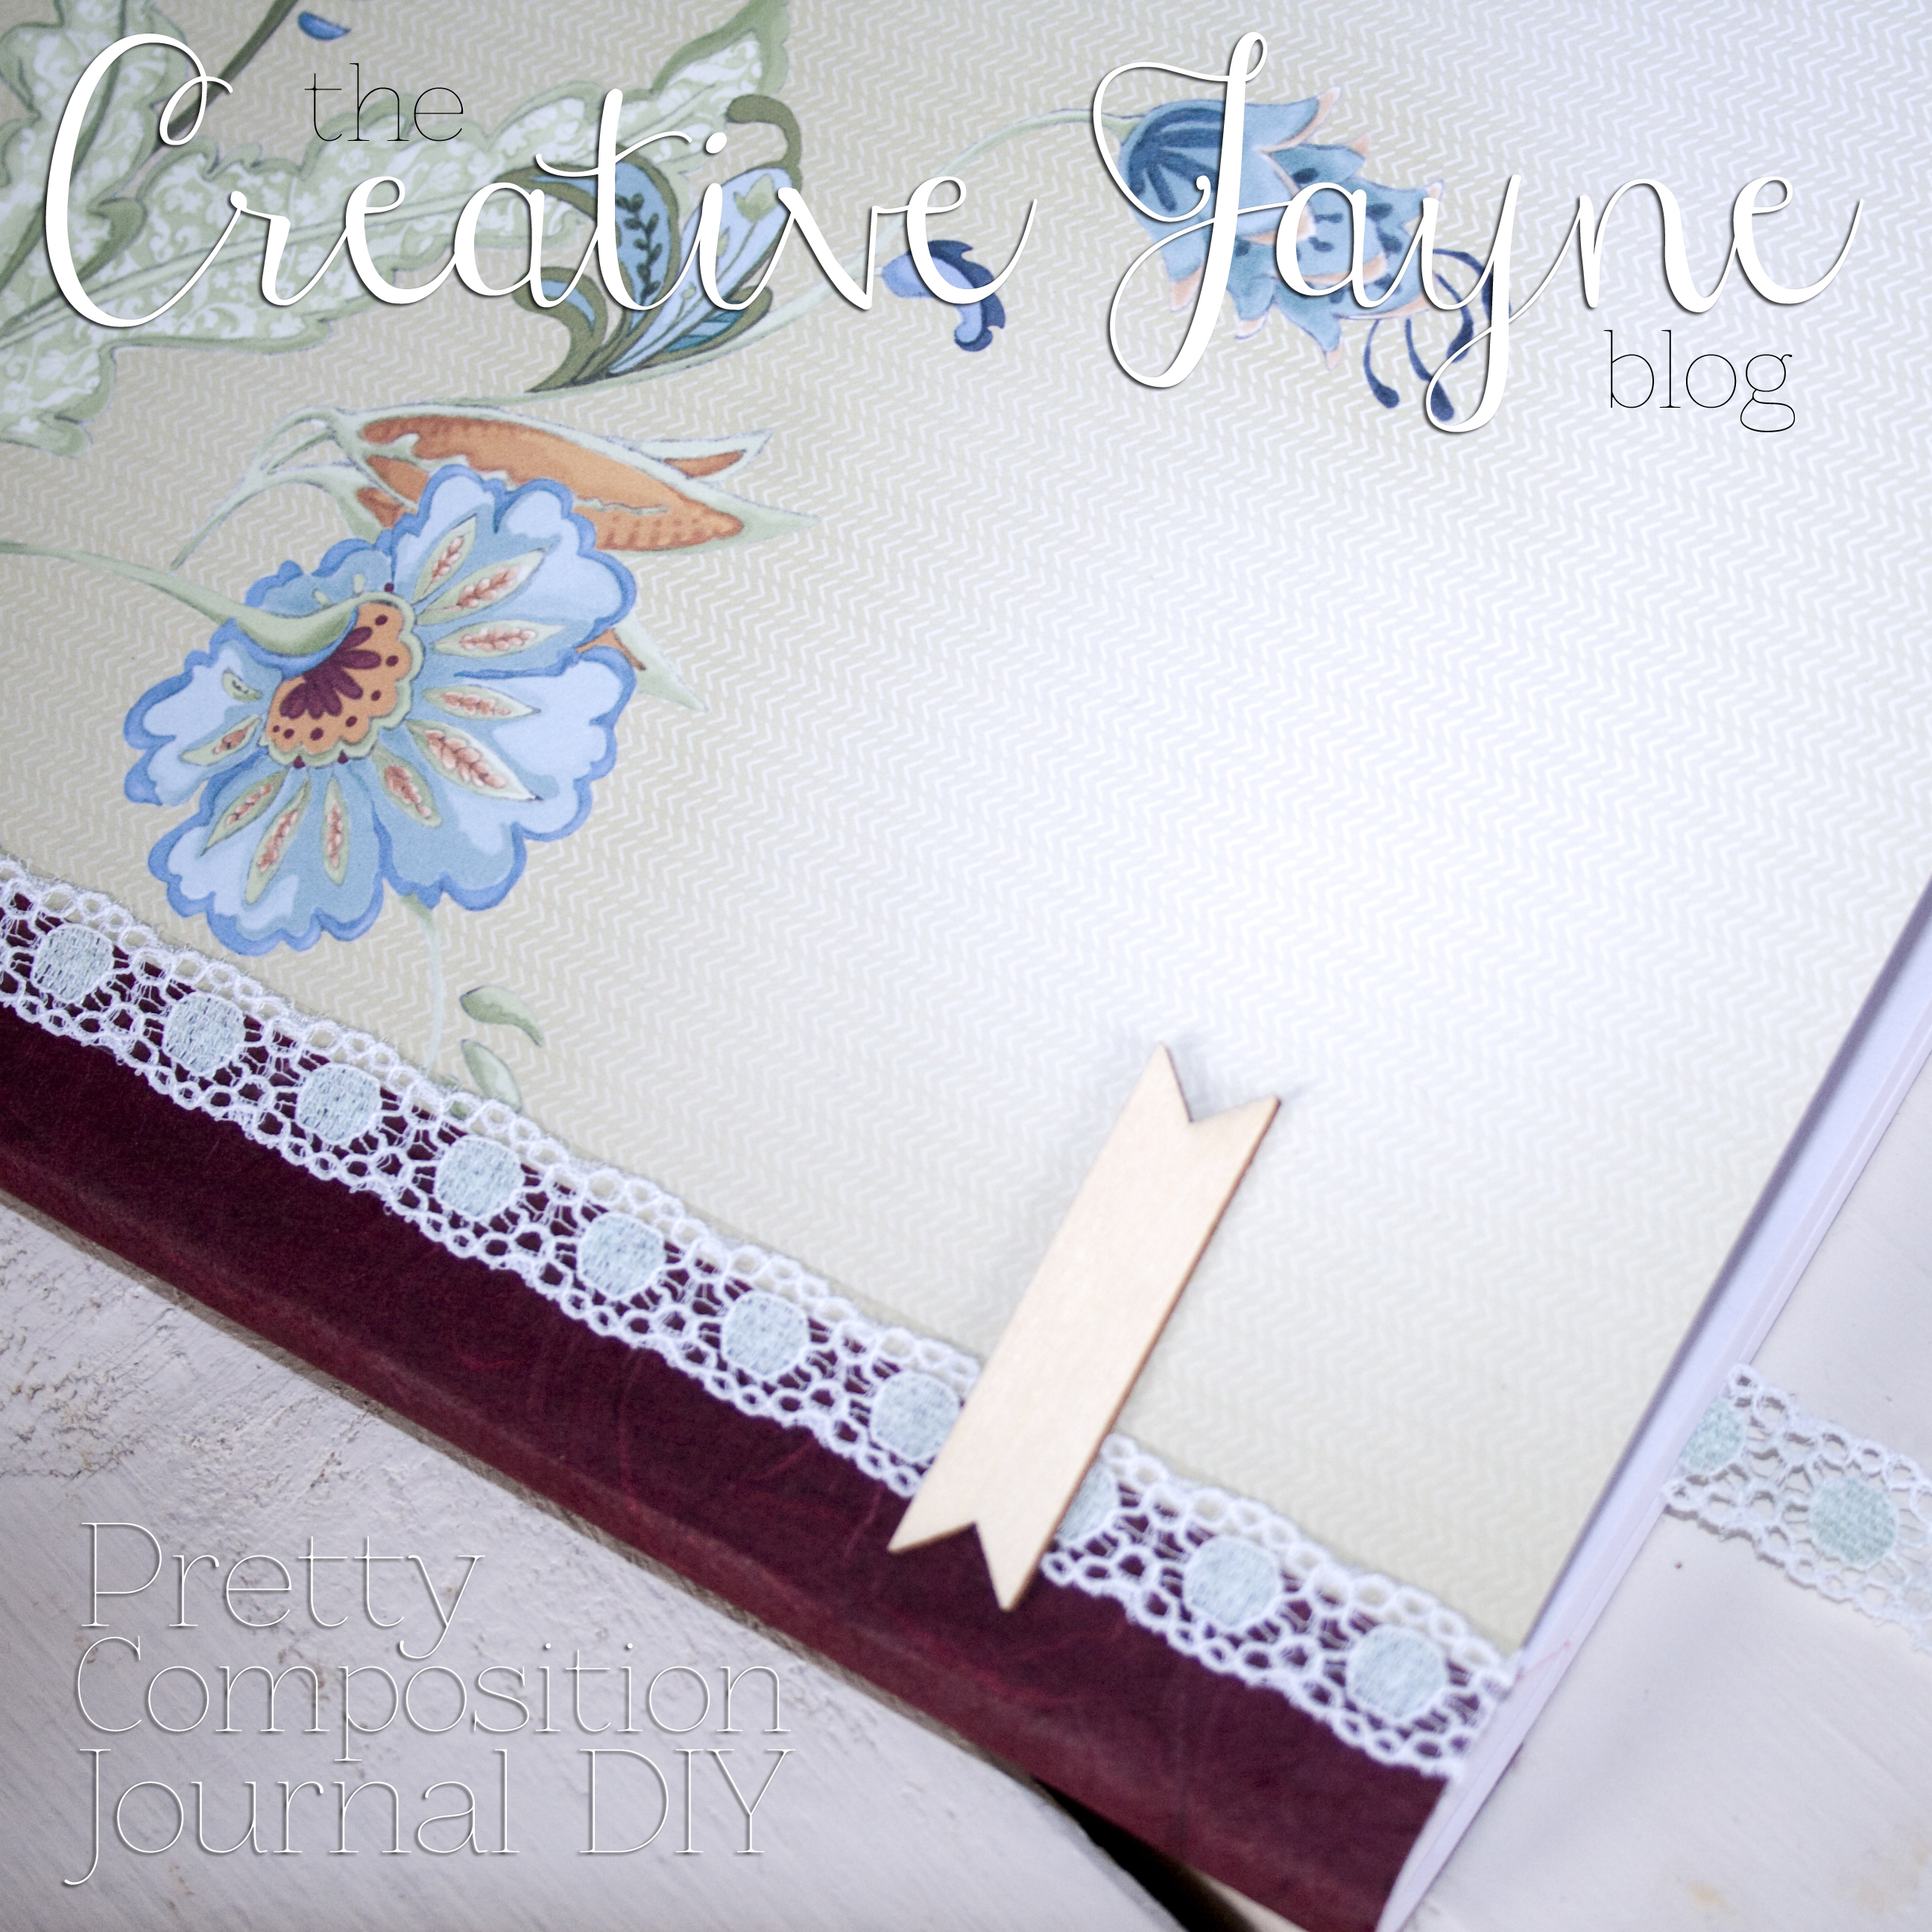 the creative jayne pretty composition notebook tutorial_15